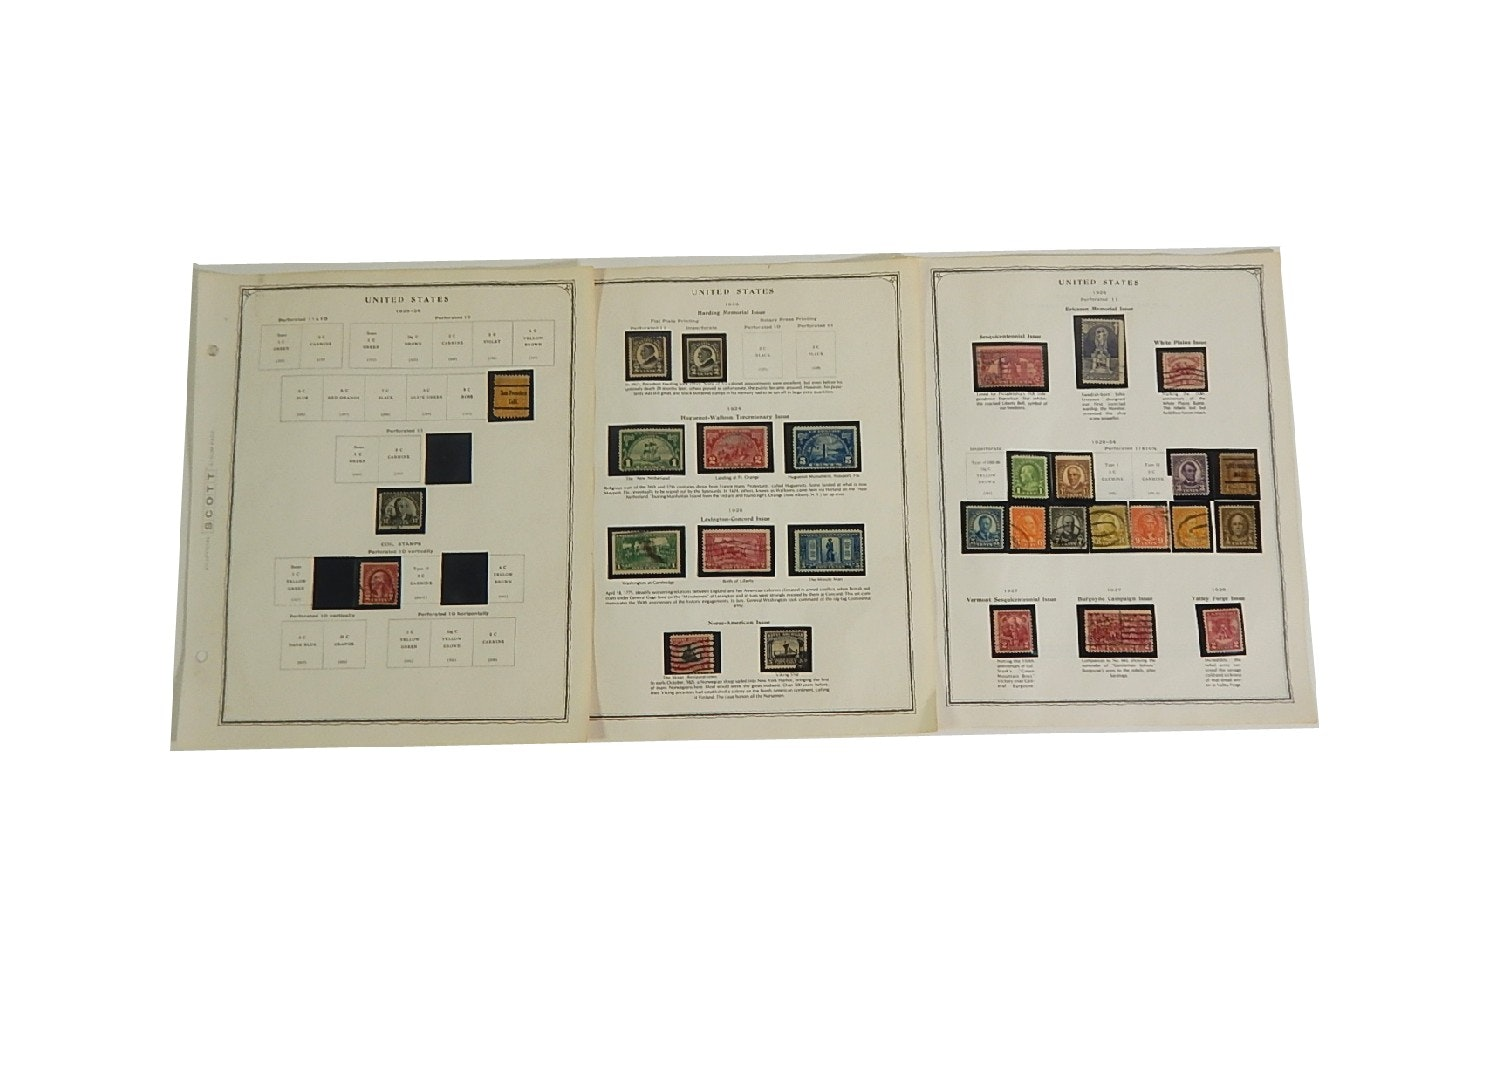 Early 1900s Stamp Collection from Scott Collectors Book - 1923 to 1934